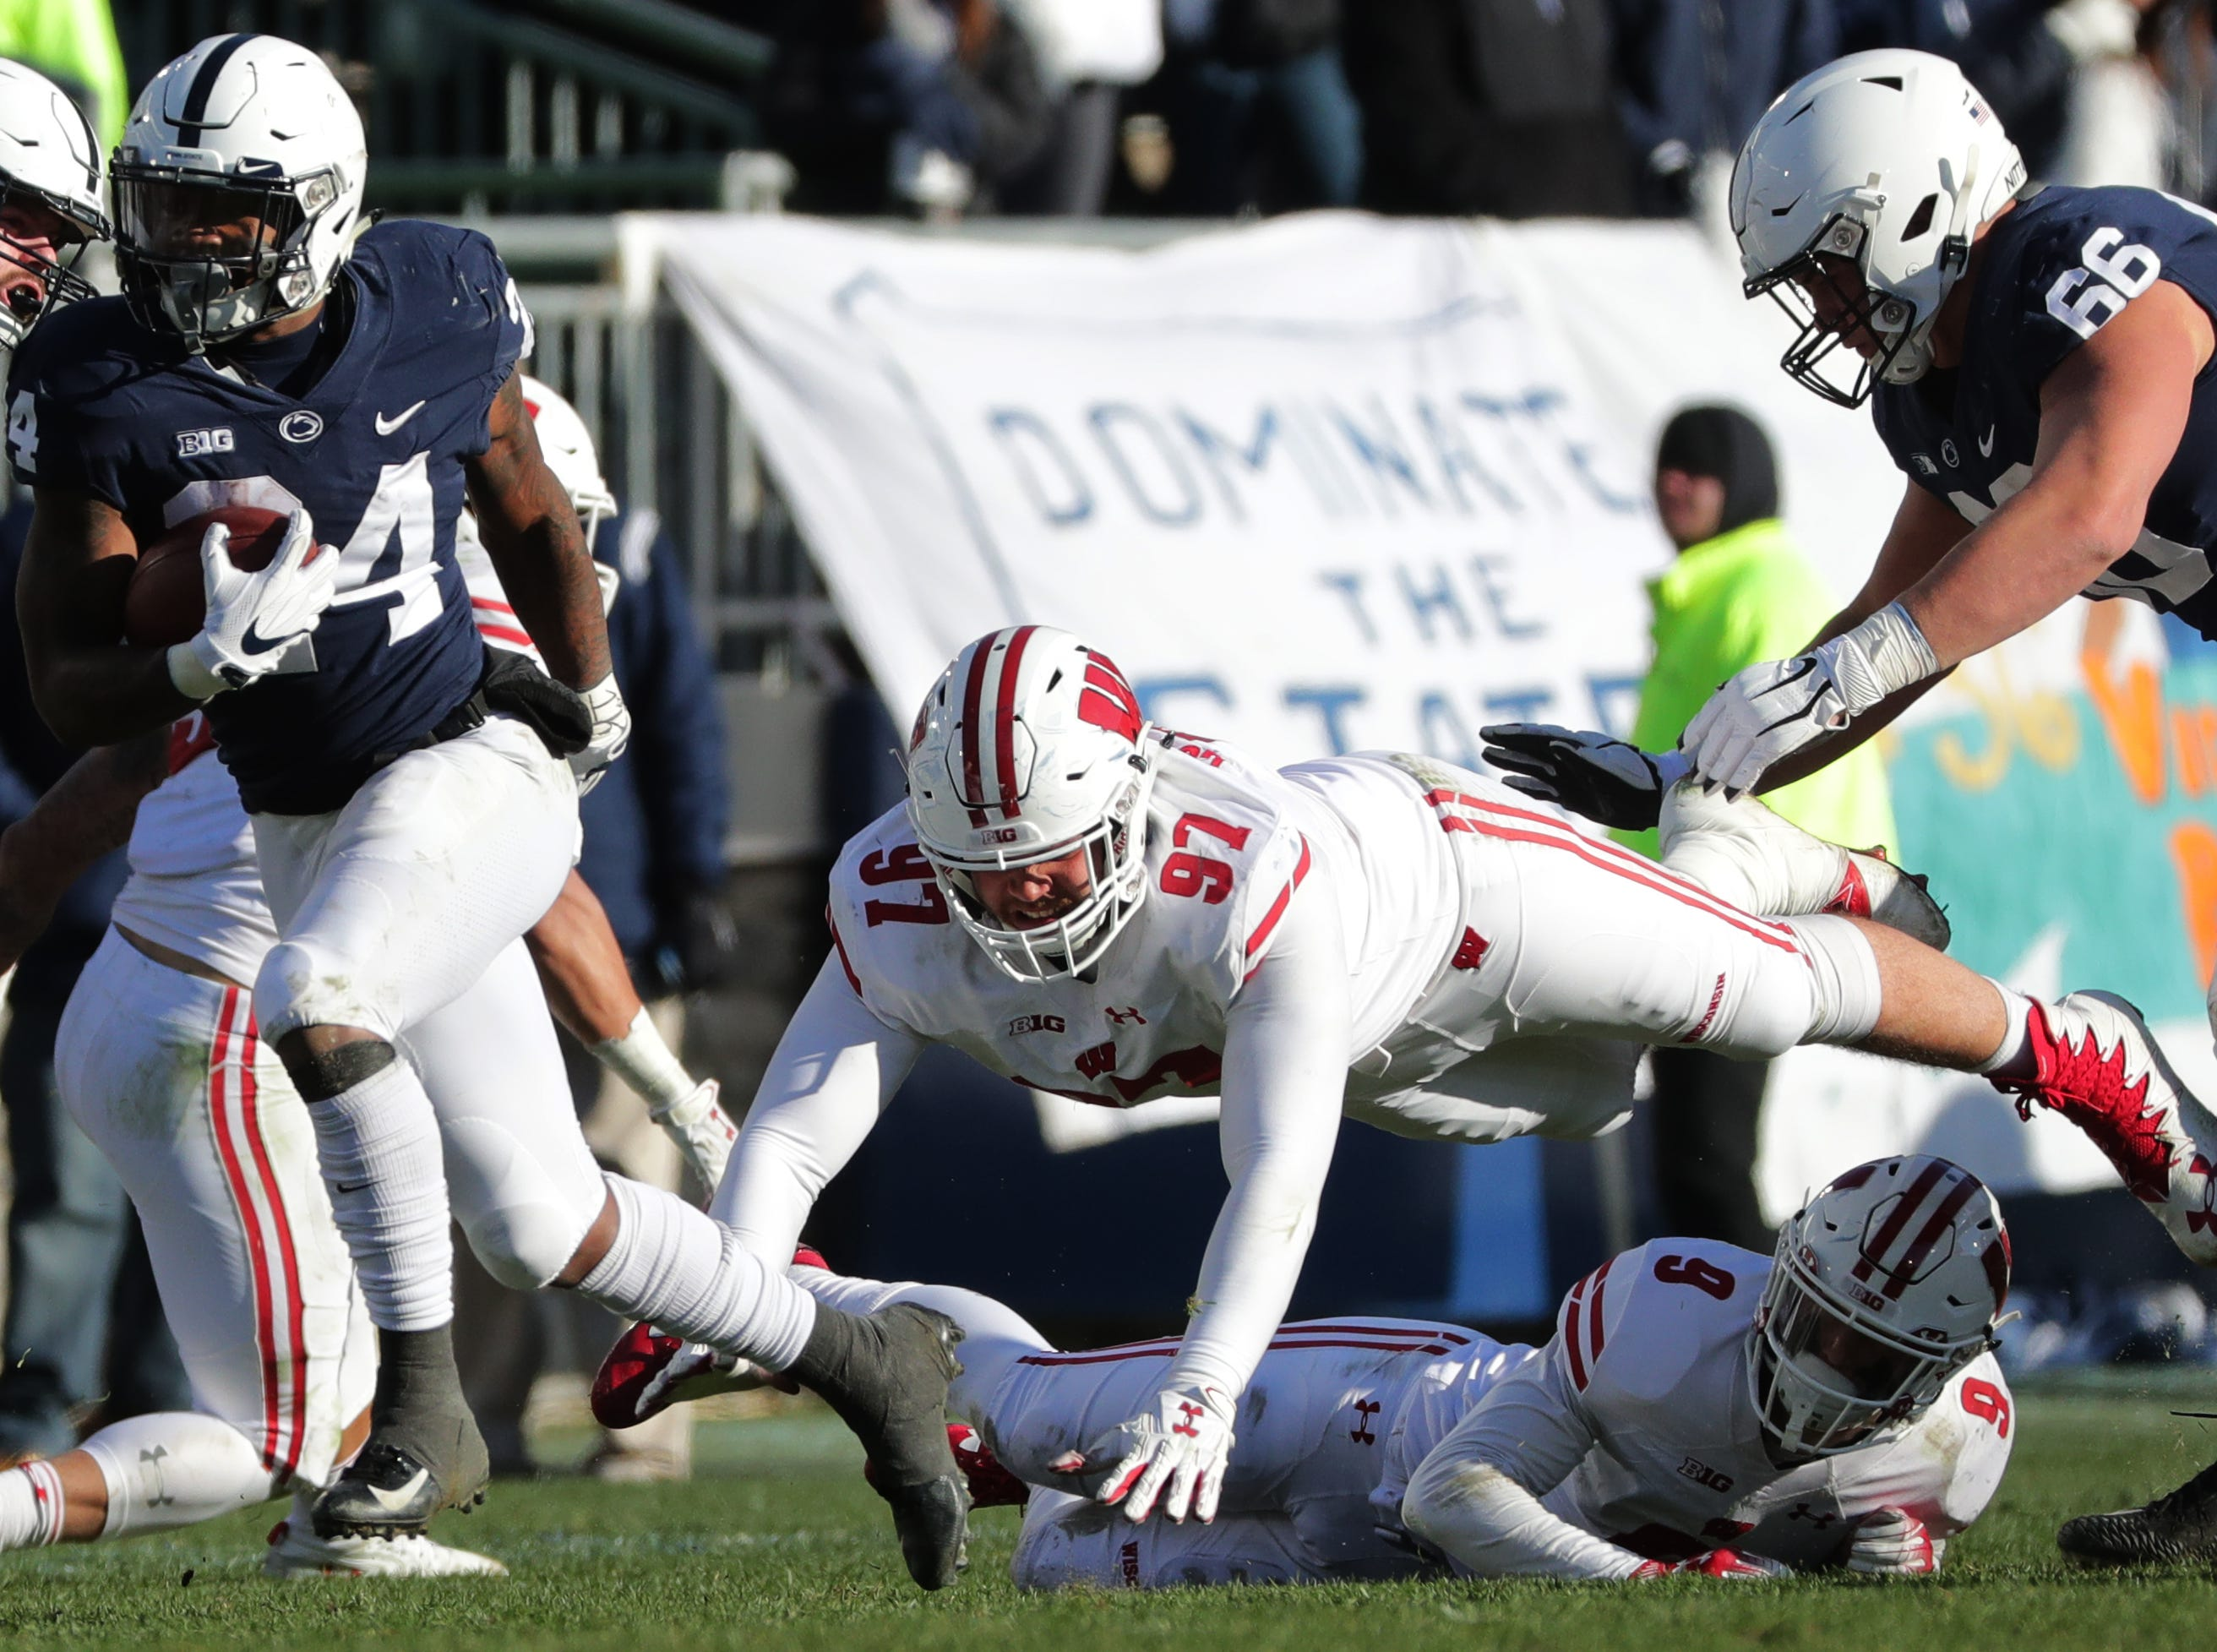 Penn State running back Miles Sanders eludes the grasp of Wisconsin defensive end Isaiahh Loudermilk during the third quarter Saturday.